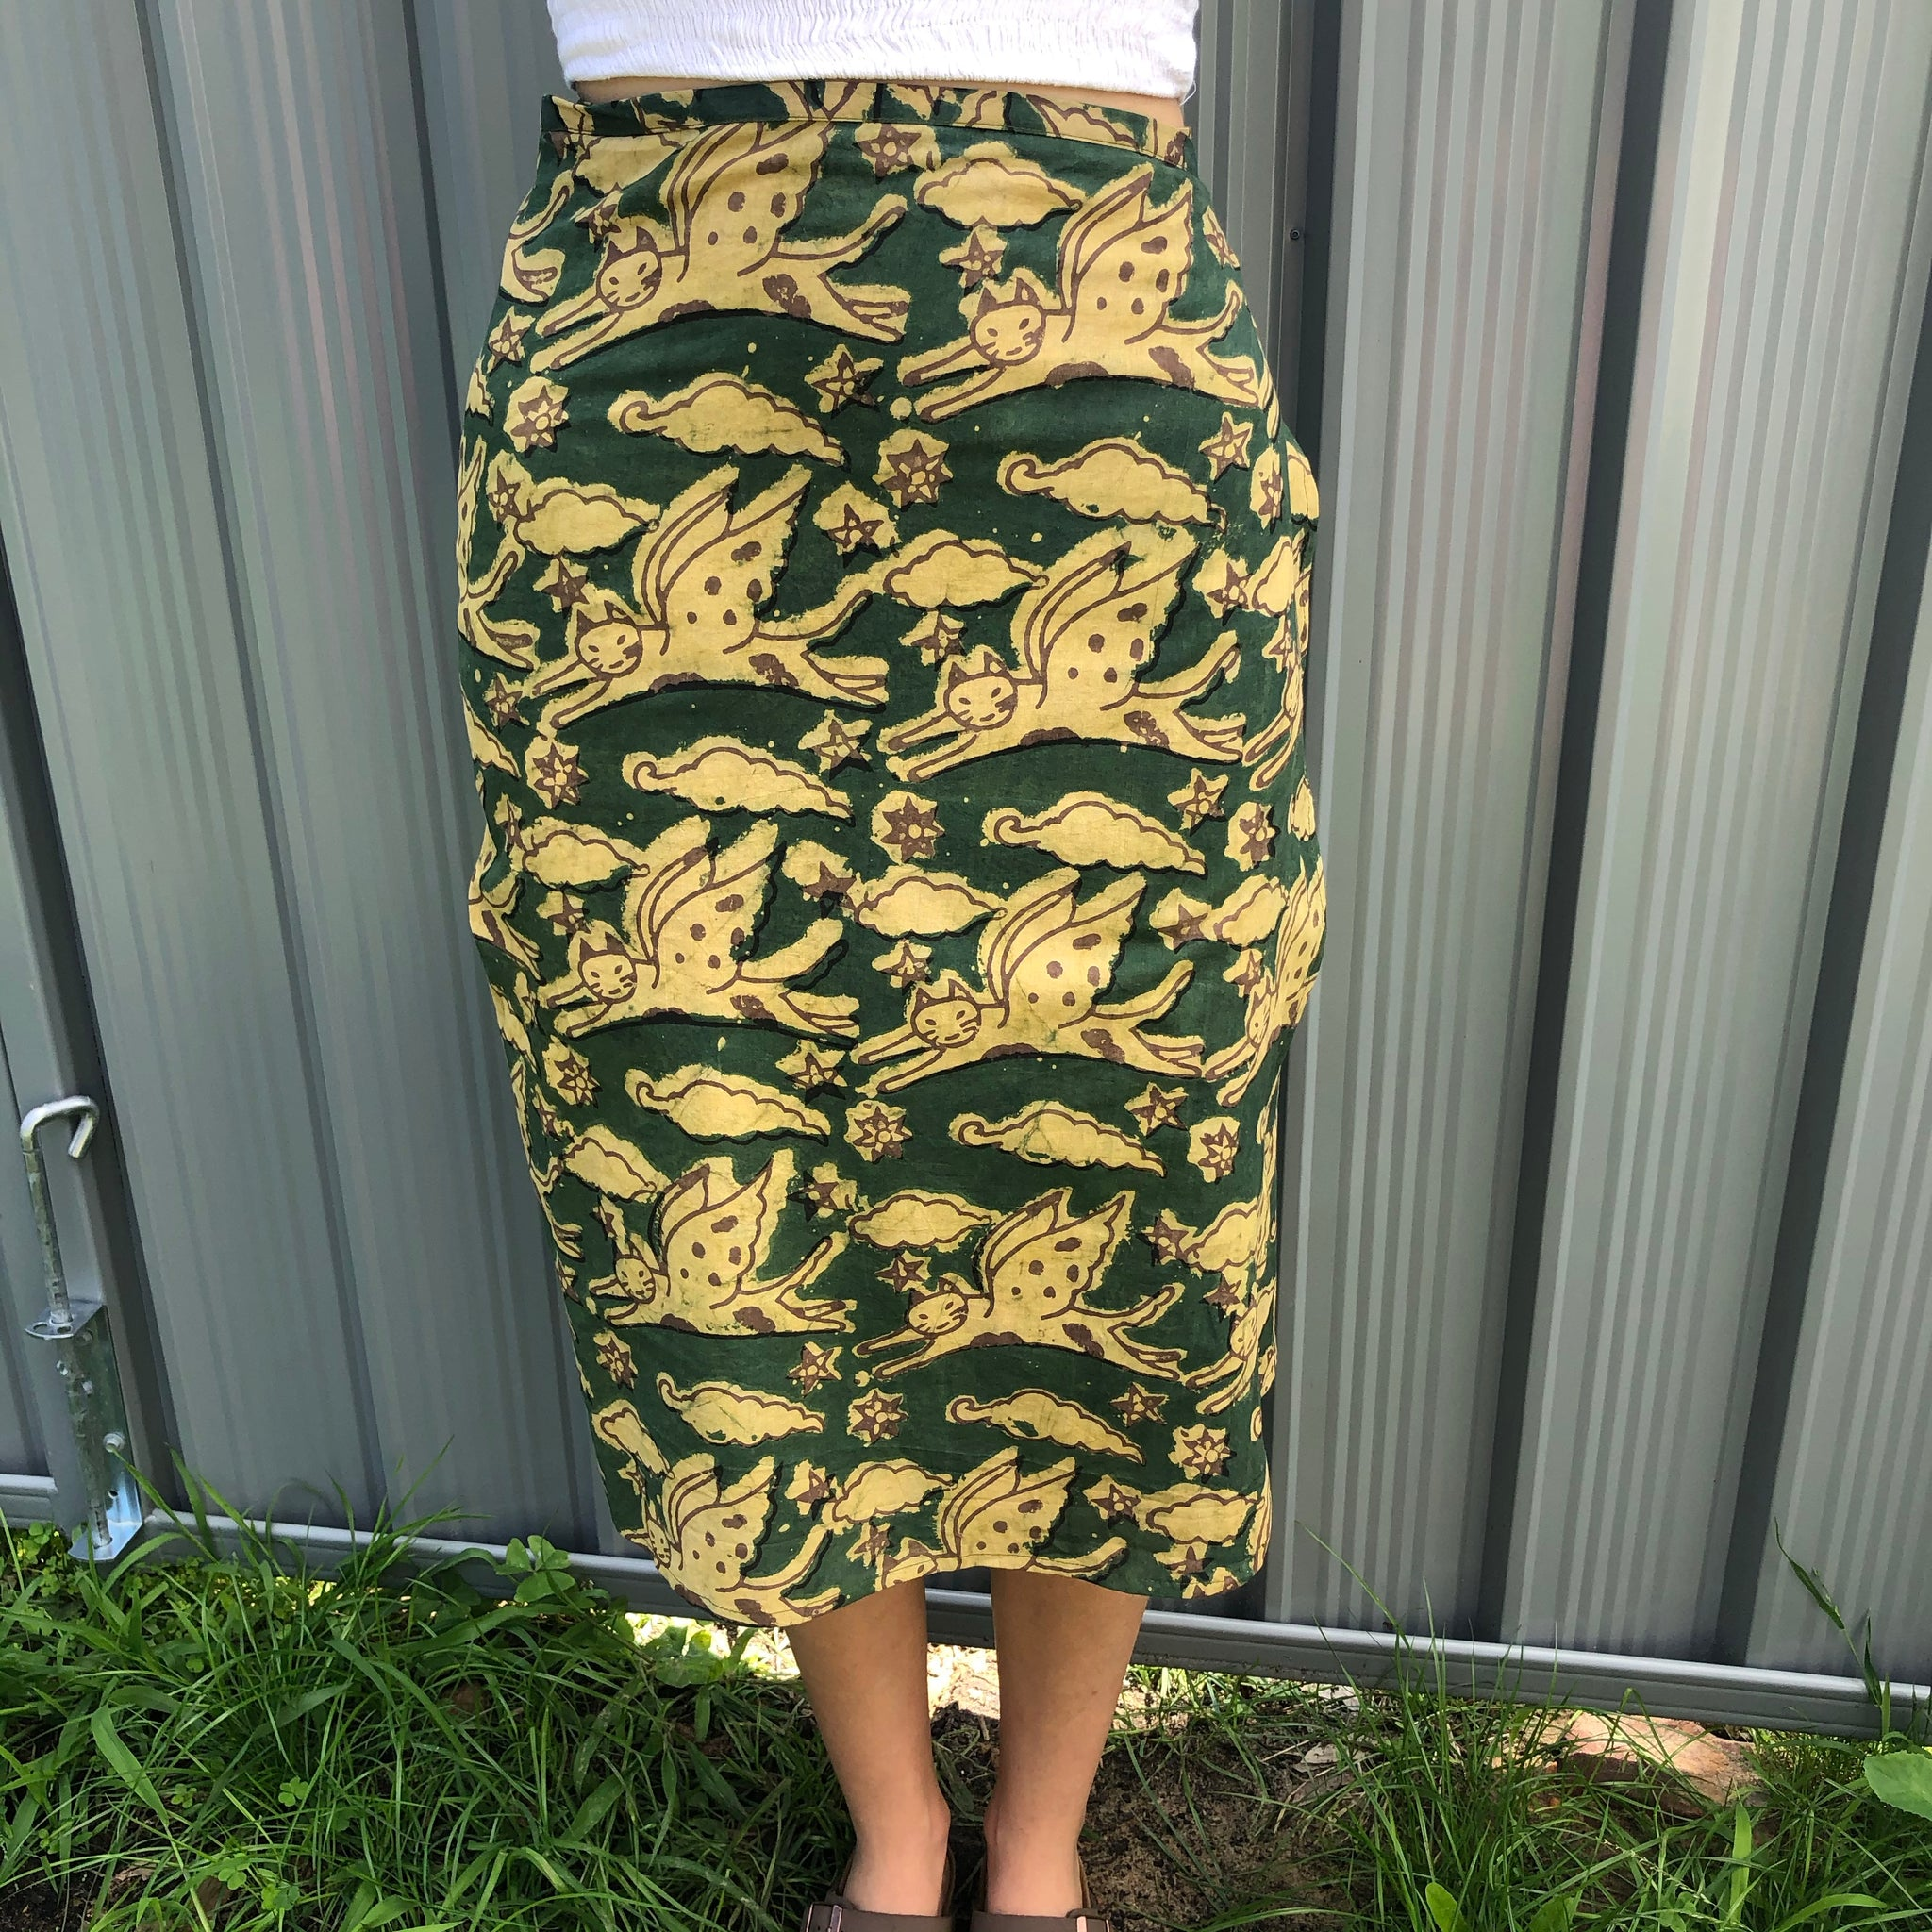 Fair Trade Ethical Cotton Mud Resistant Print Wrap Skirt Green Flying Cats Design